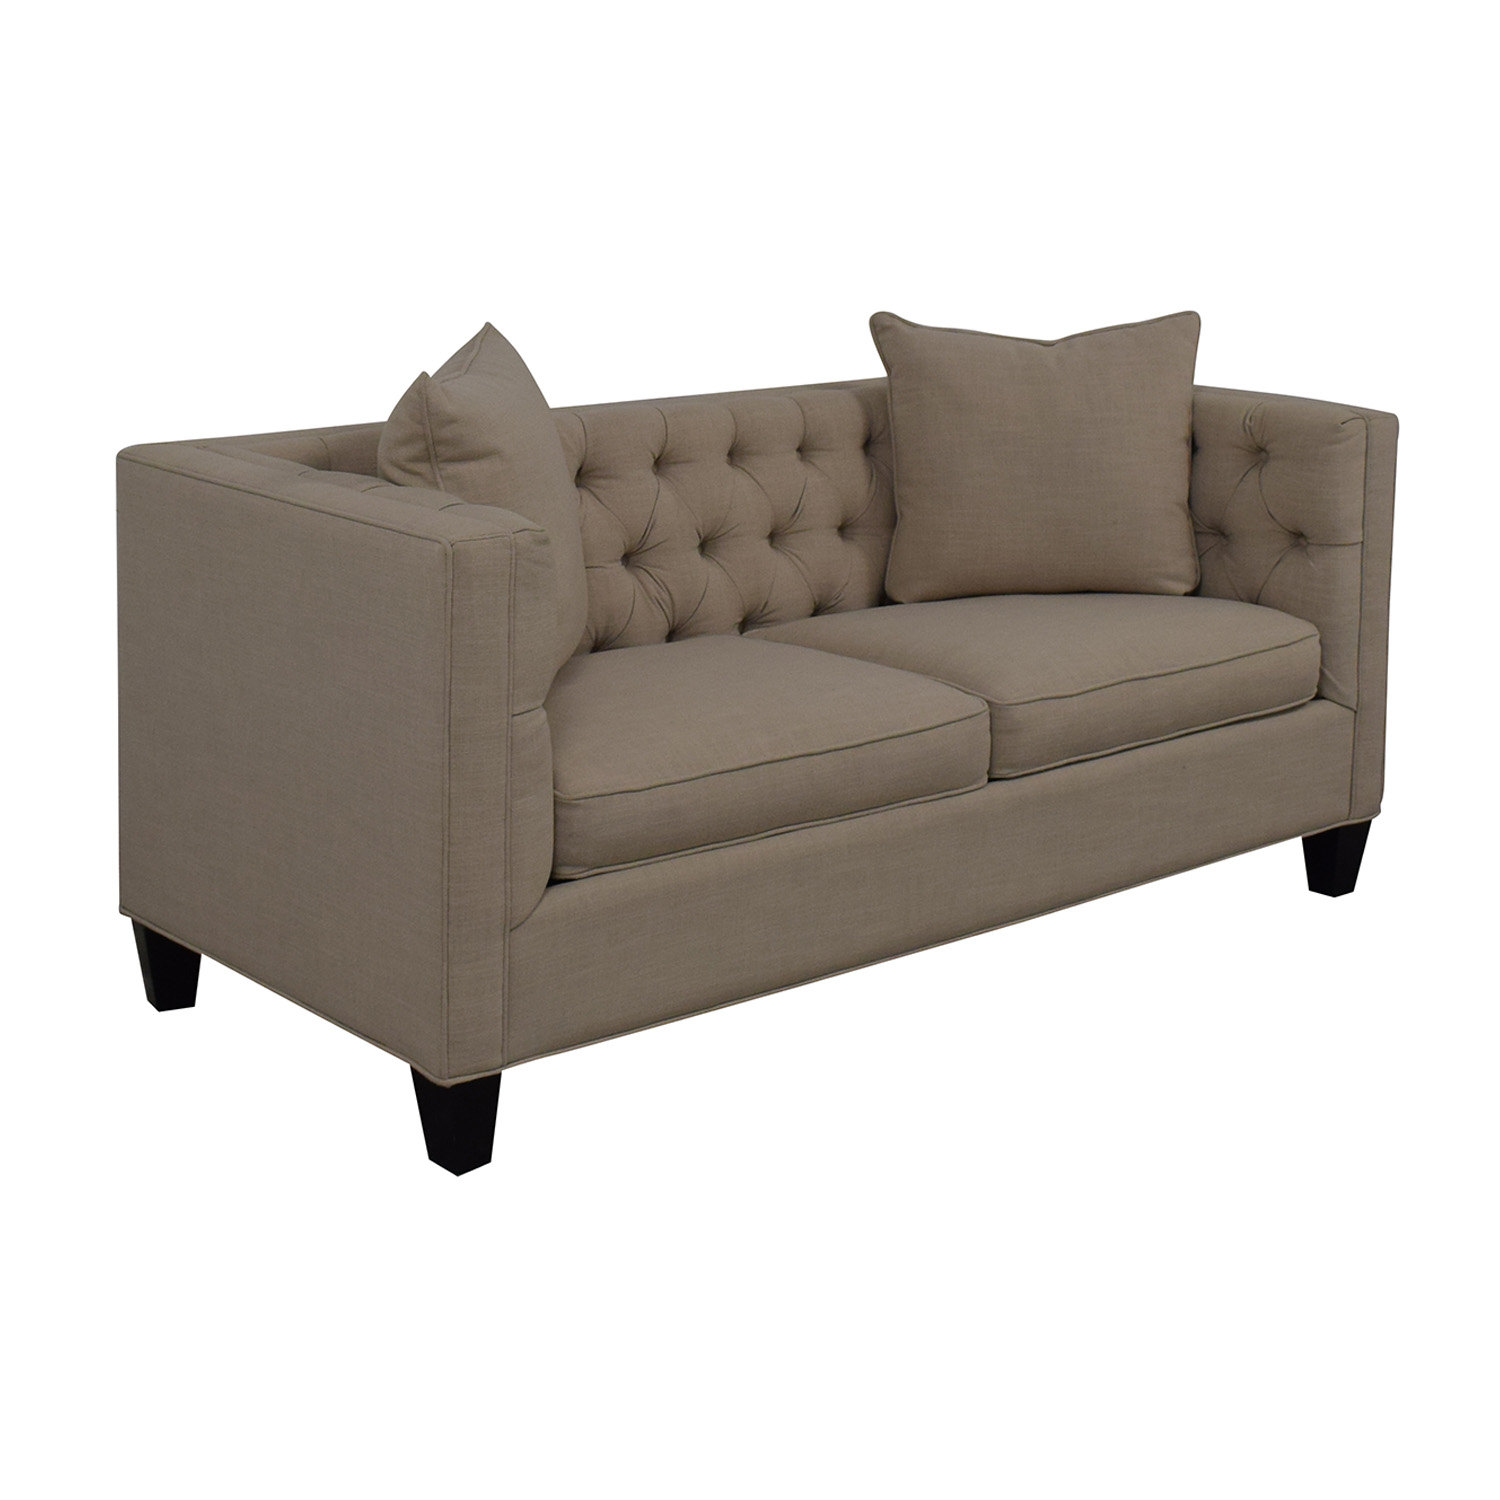 Home Decorators Collection Home Decorators Collection Lakewood Beige Linen Sofa Loveseats